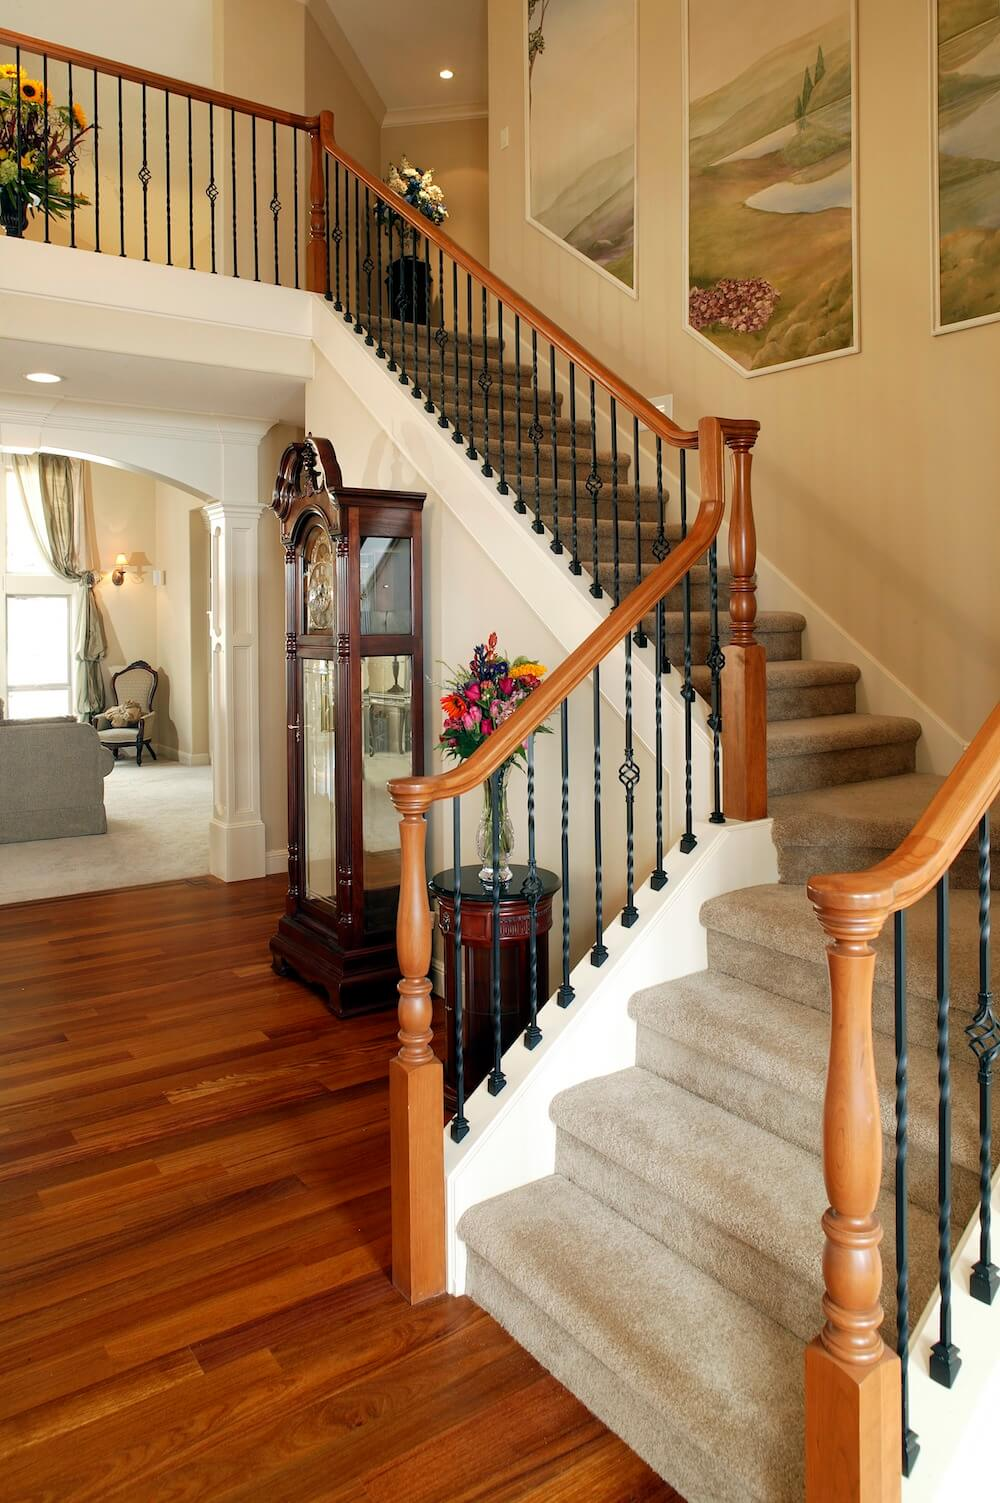 Interior%20Stairs%20Cost - View Simple Staircase Design For Small House Pictures